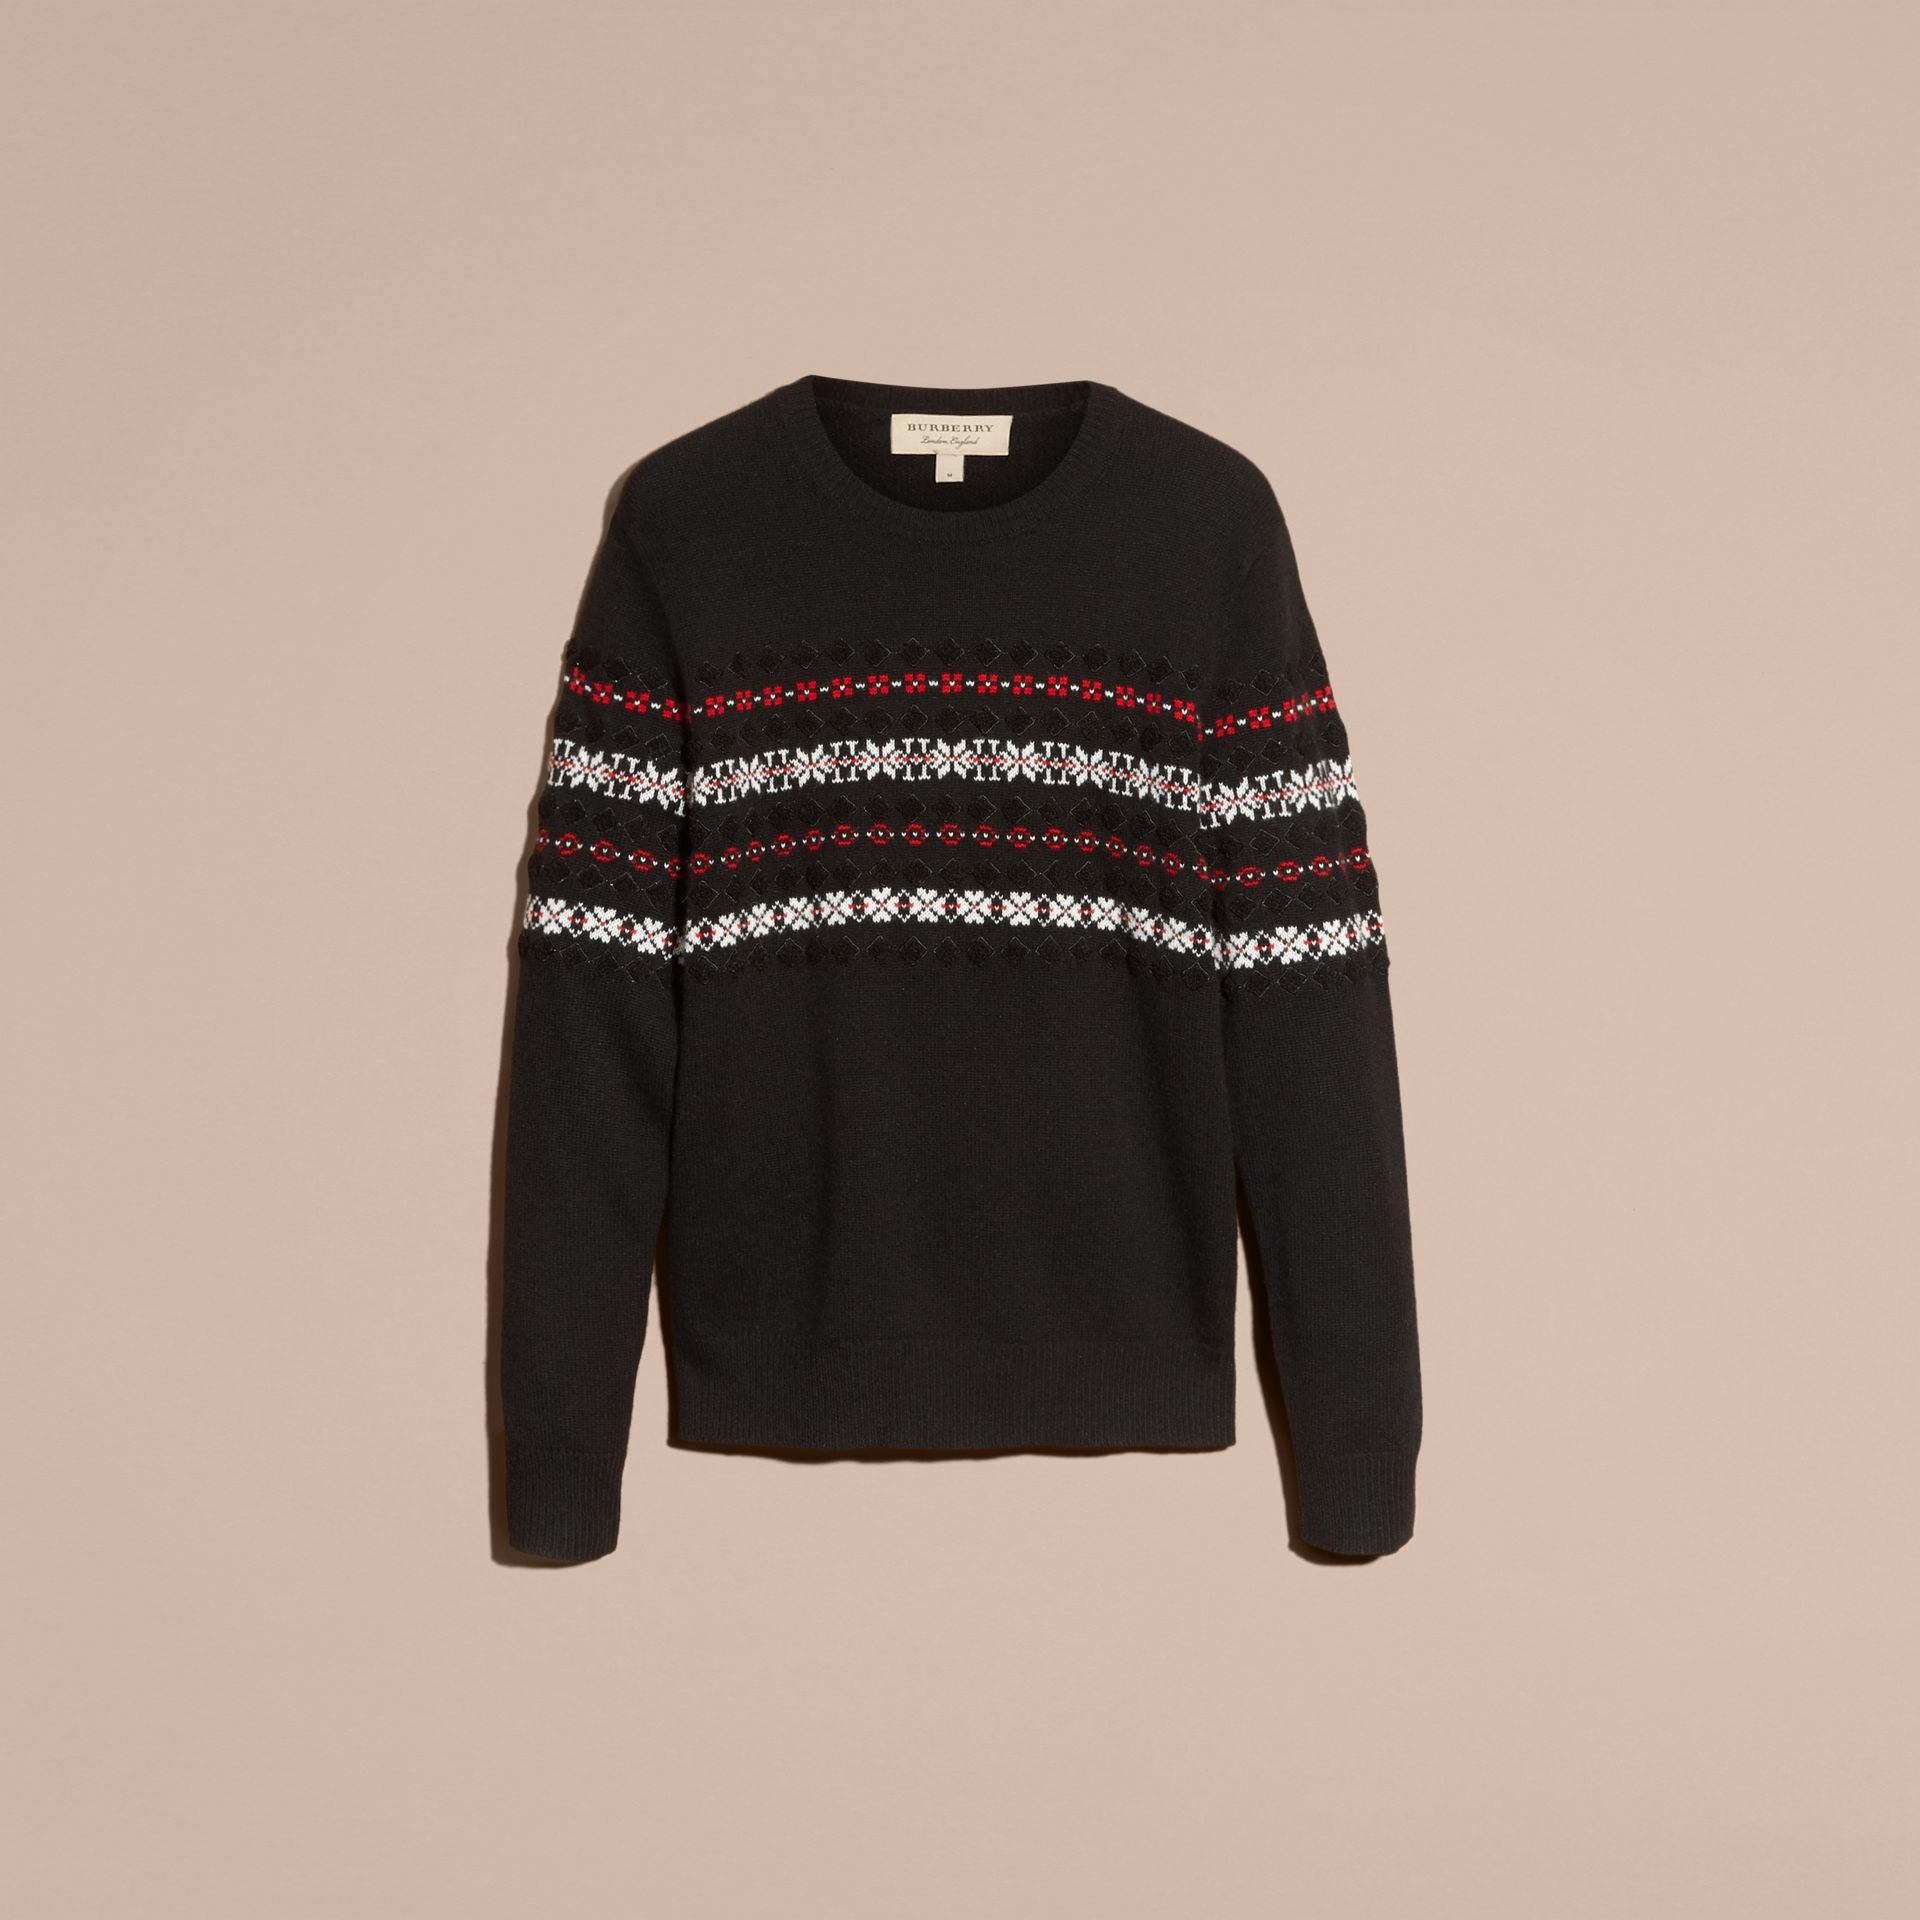 Black Fair Isle Knit Cashmere Wool Sweater - gallery image 4